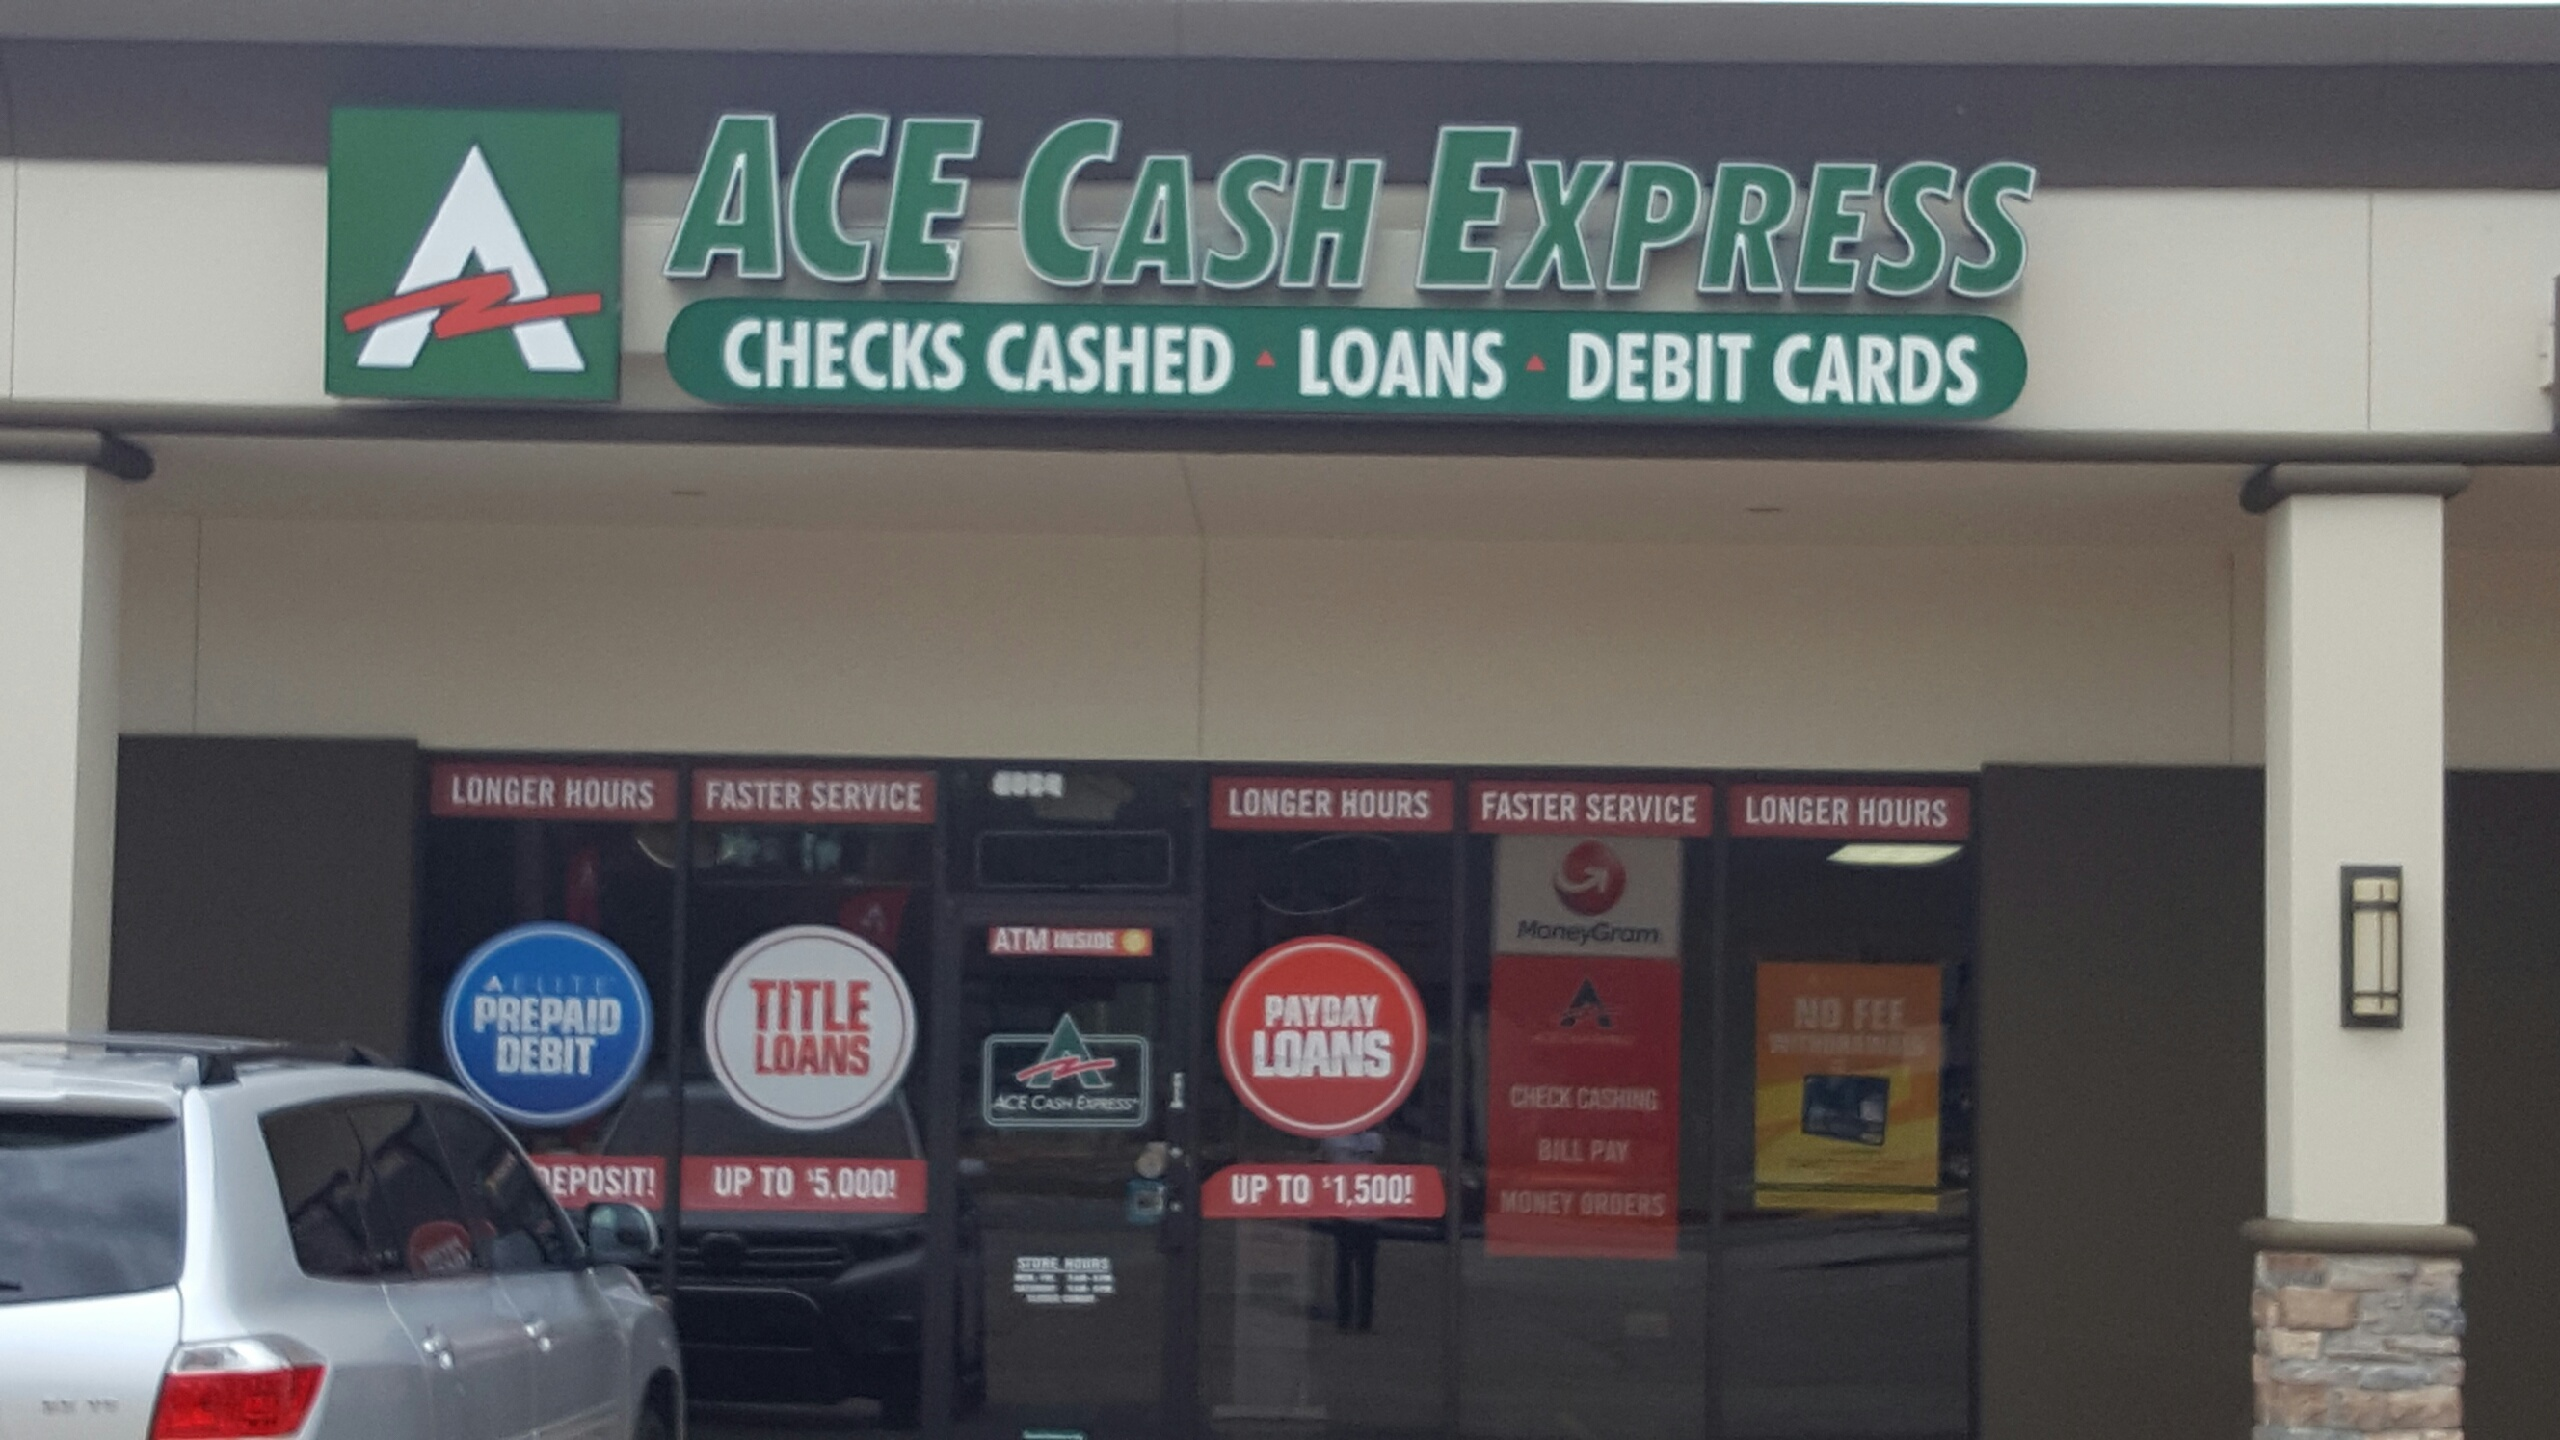 Today we offer you 2 ACE Cash Express Promo Codes and 11 deals to get the biggest discount. All coupons and promo codes are time limited. Grab the chance for a huge saving before it's gone. Apply the ACE Cash Express Promo Code at check out to get the discount immediately.